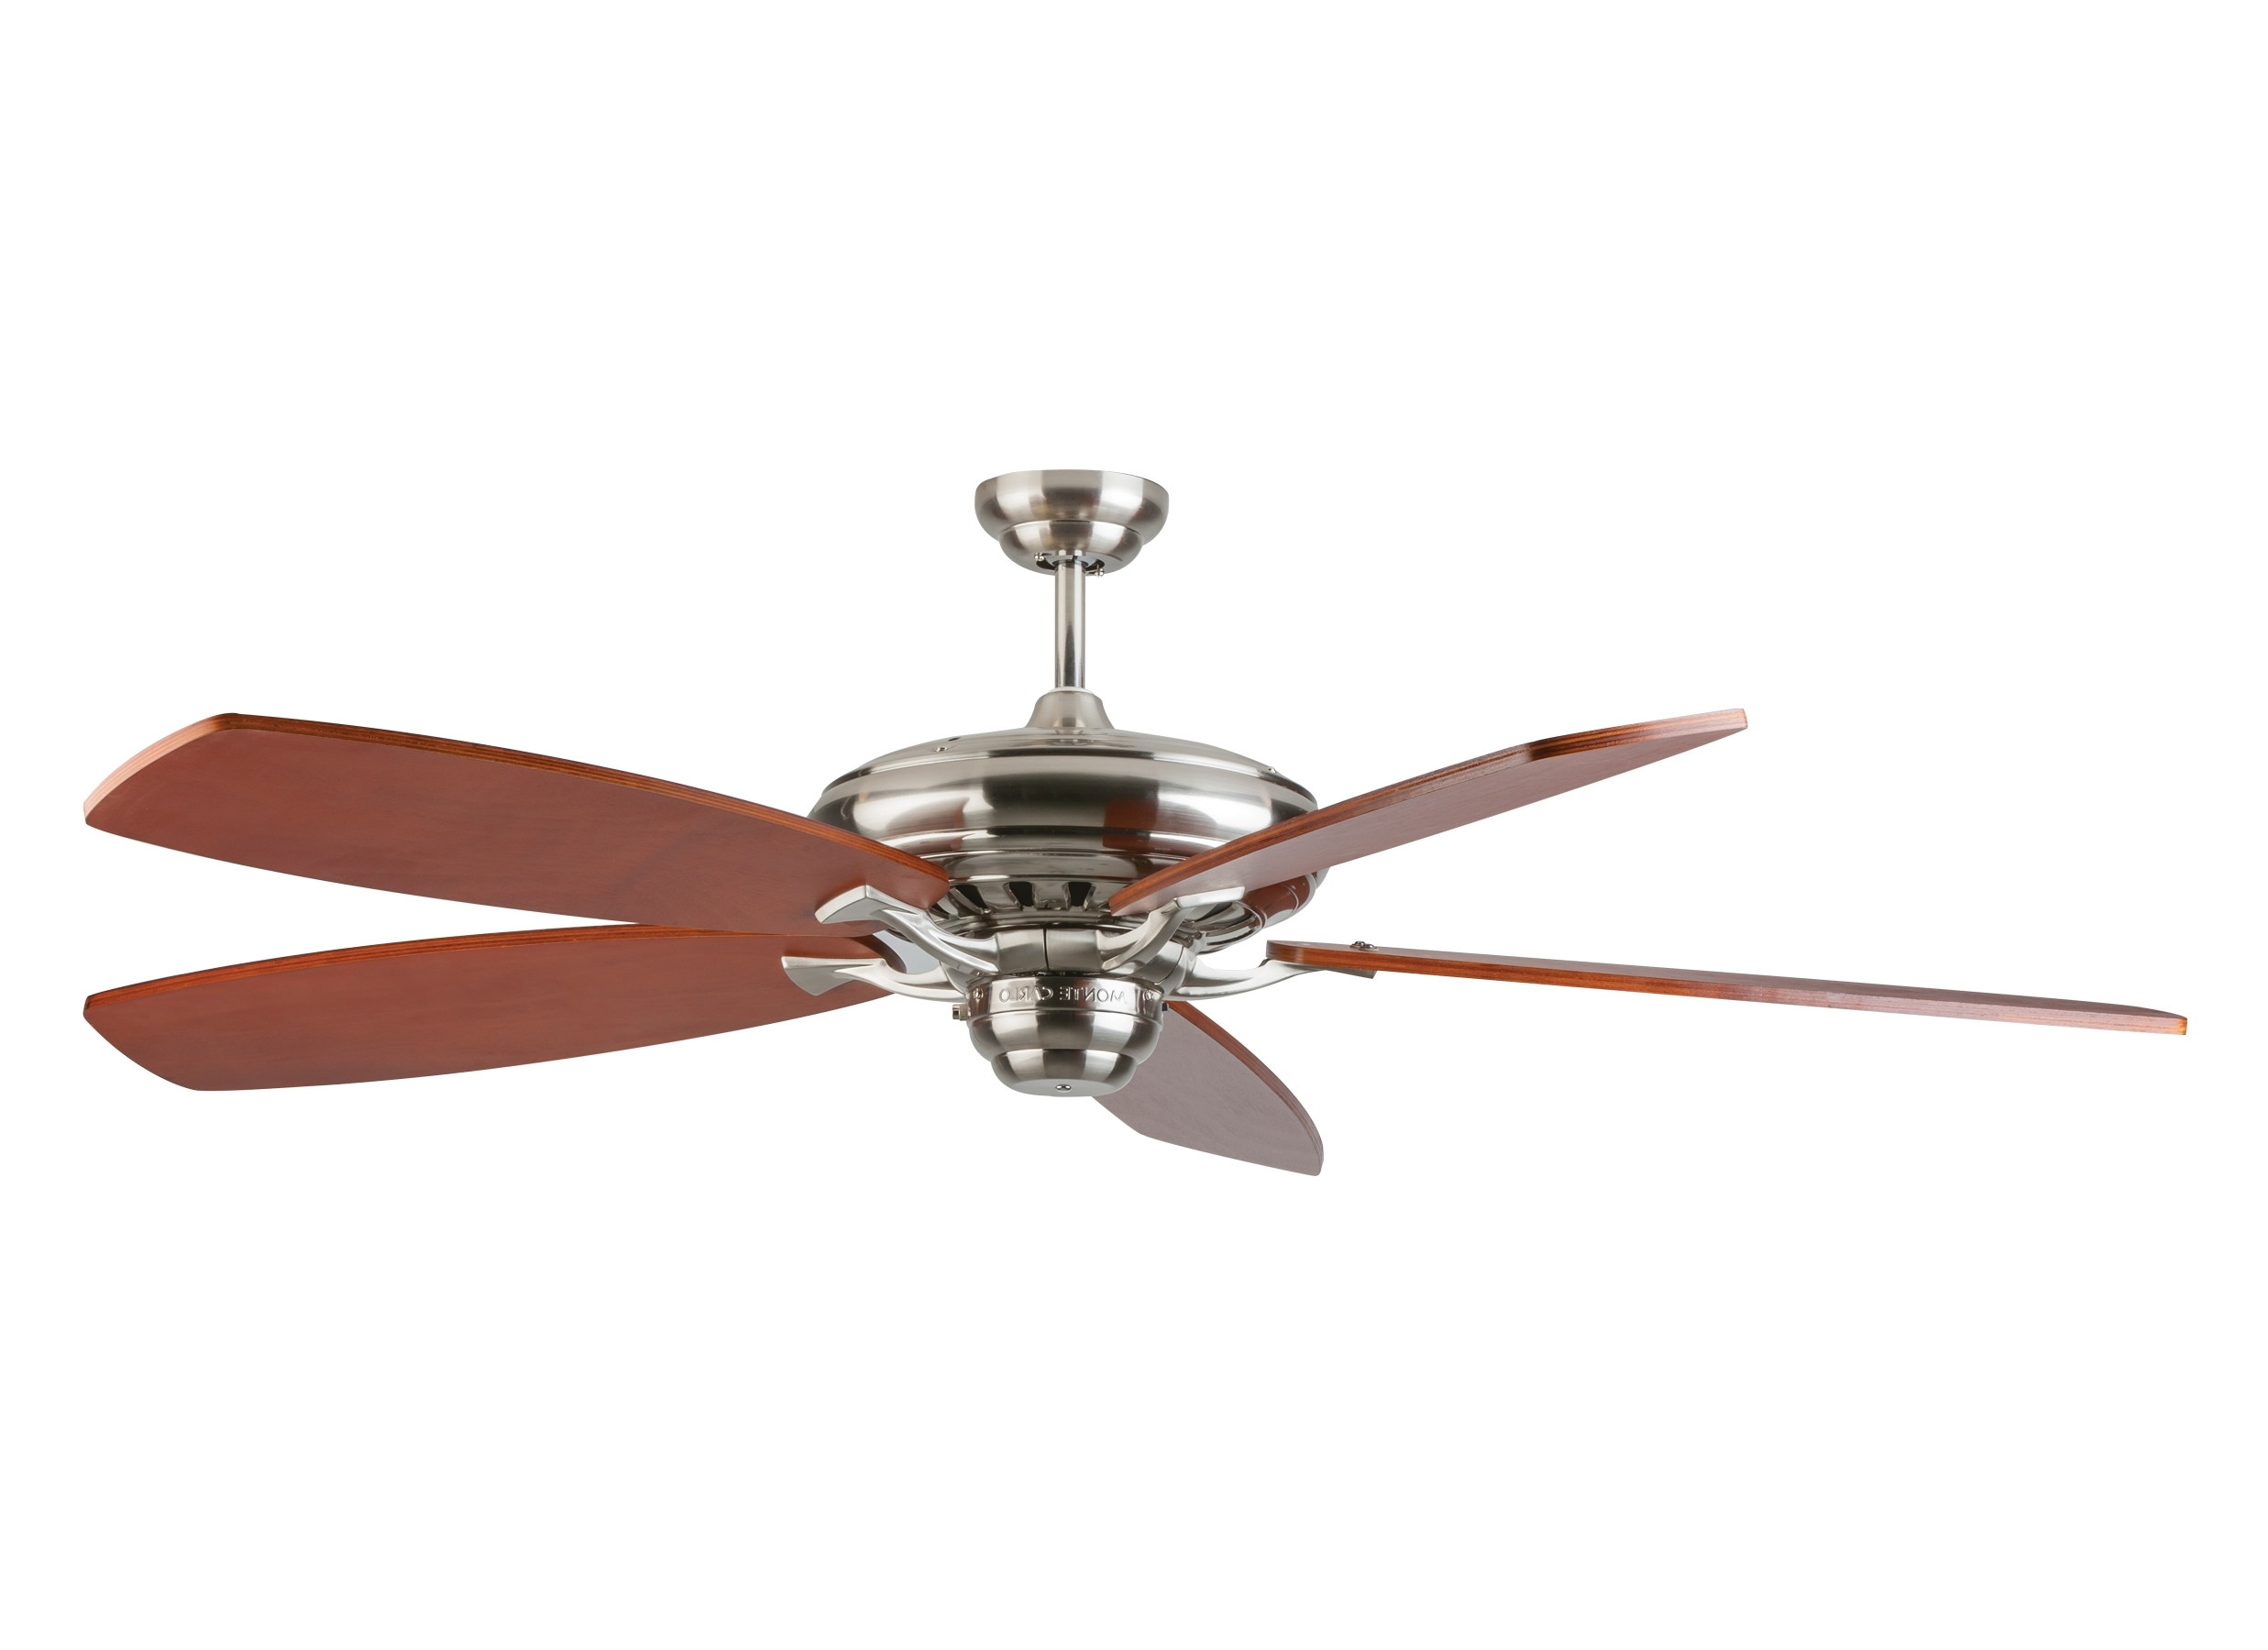 48 Outdoor Ceiling Fans With Light Kit Pertaining To Popular Ceiling Fanthe Monte Carlo Fan Company (View 2 of 20)